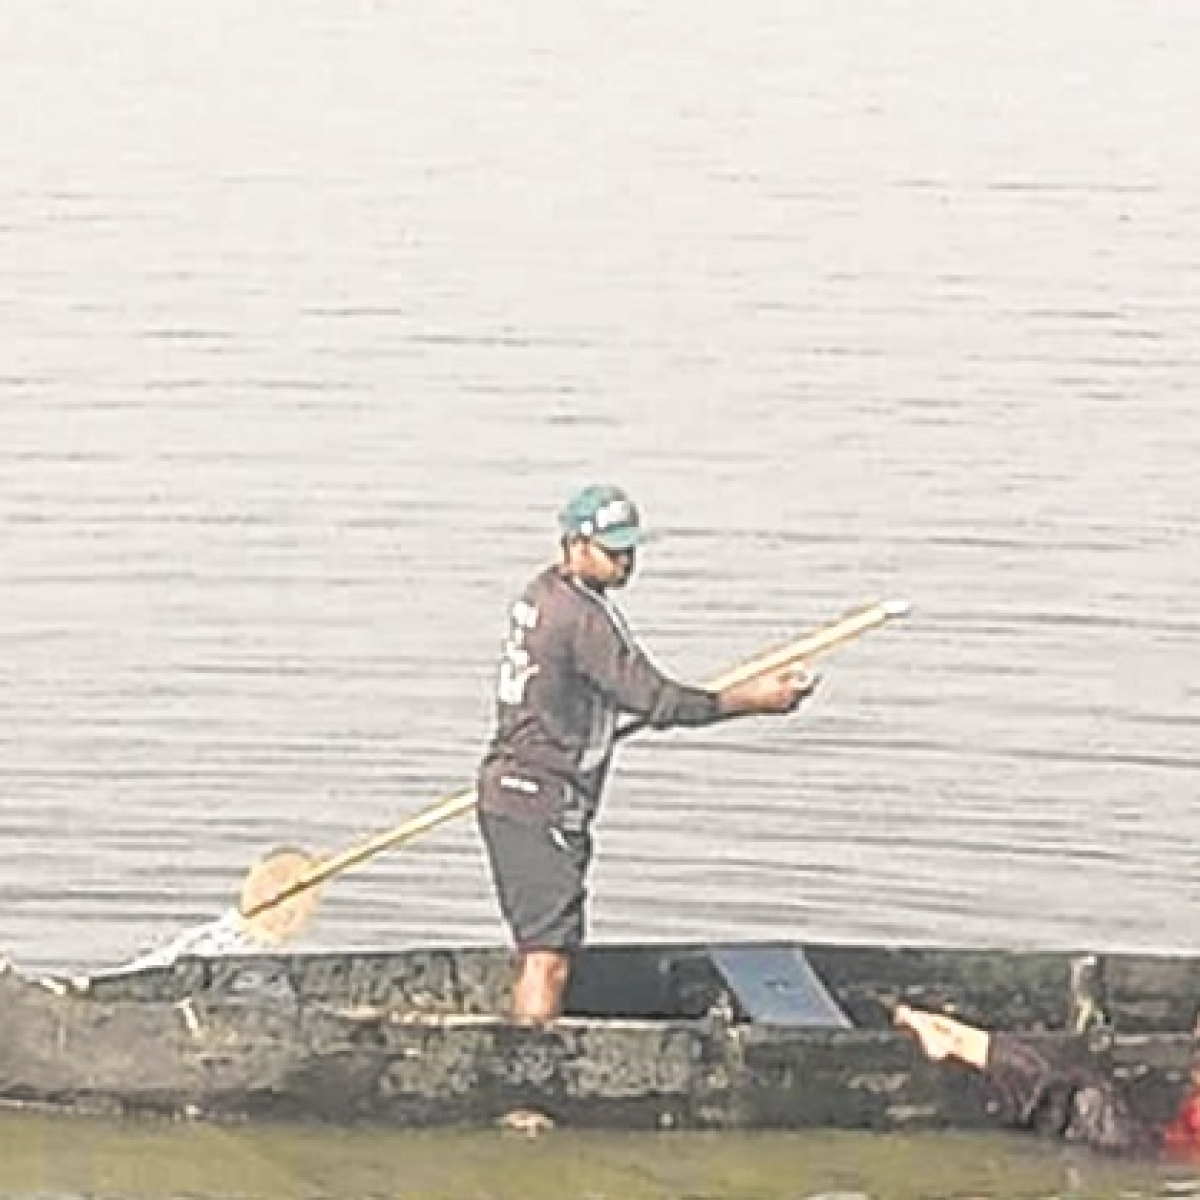 Mumbai man jumps off Vashi bridge; saved by cops with help from fisherman